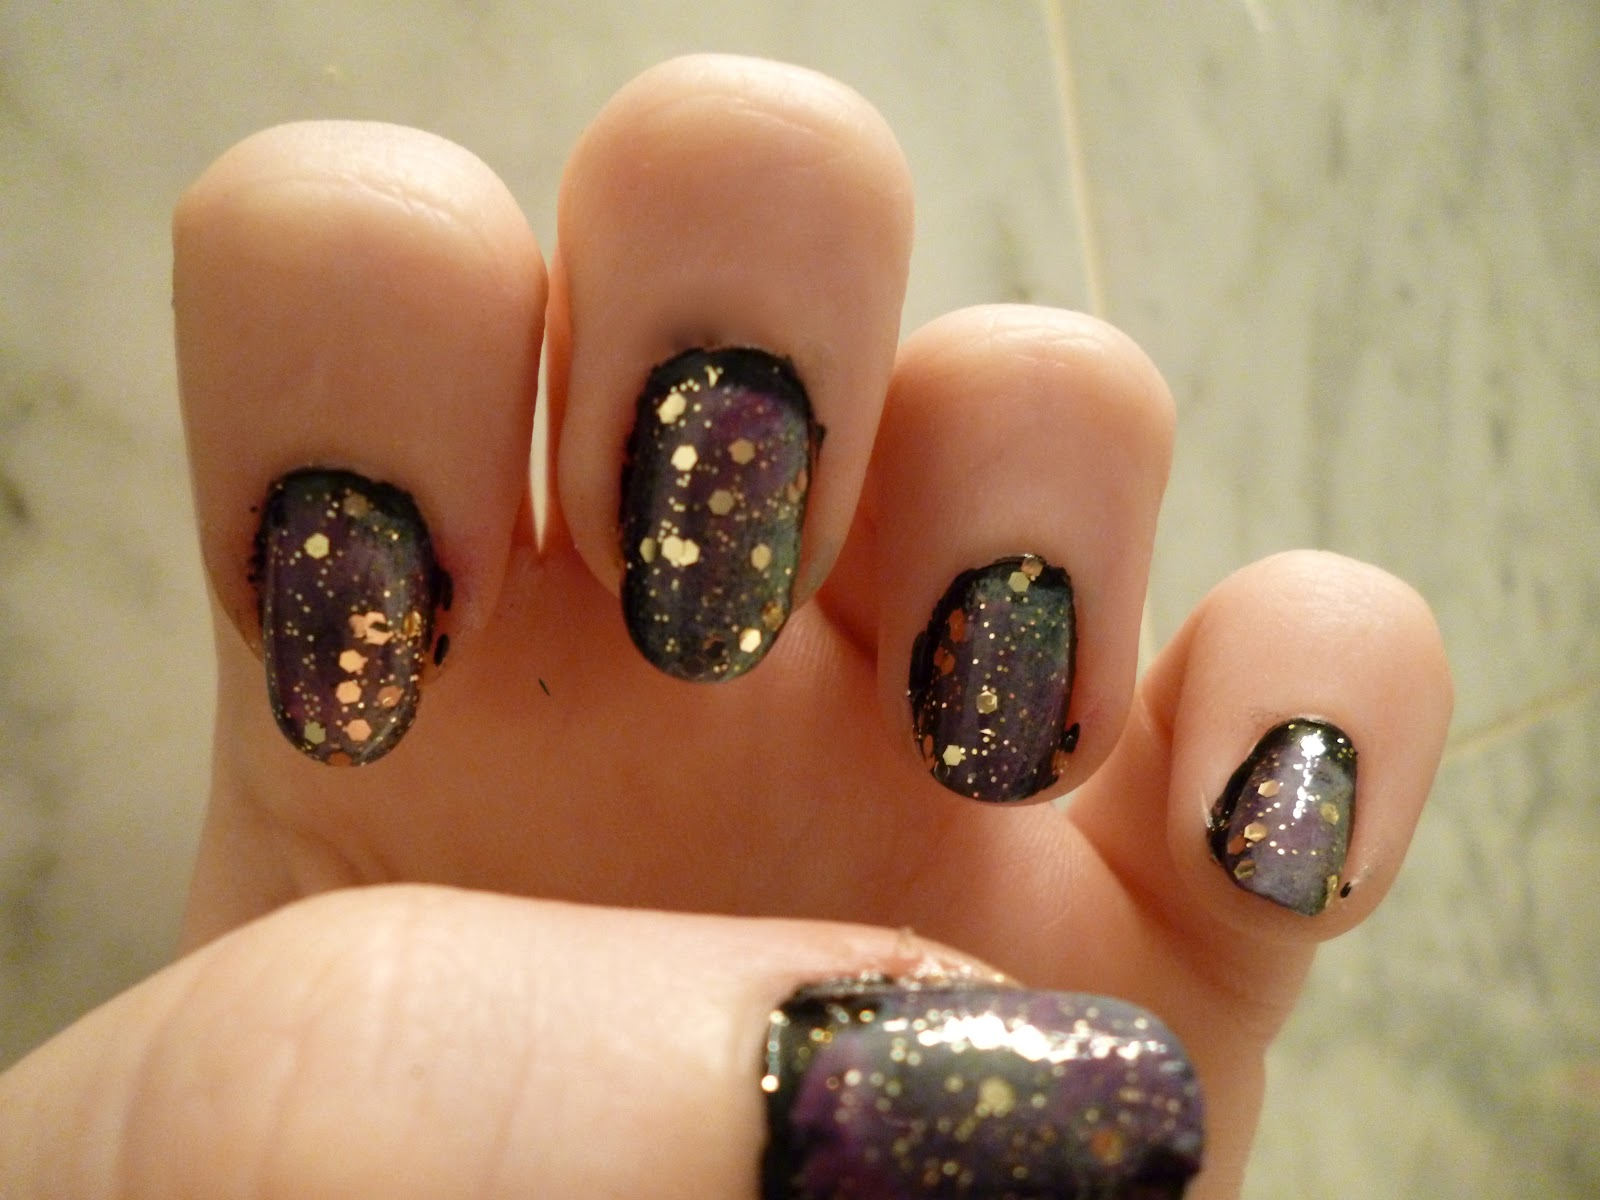 galaxy+nails+how+to+at+home+nail+tutorial+easy+diy+nail+art+manicure